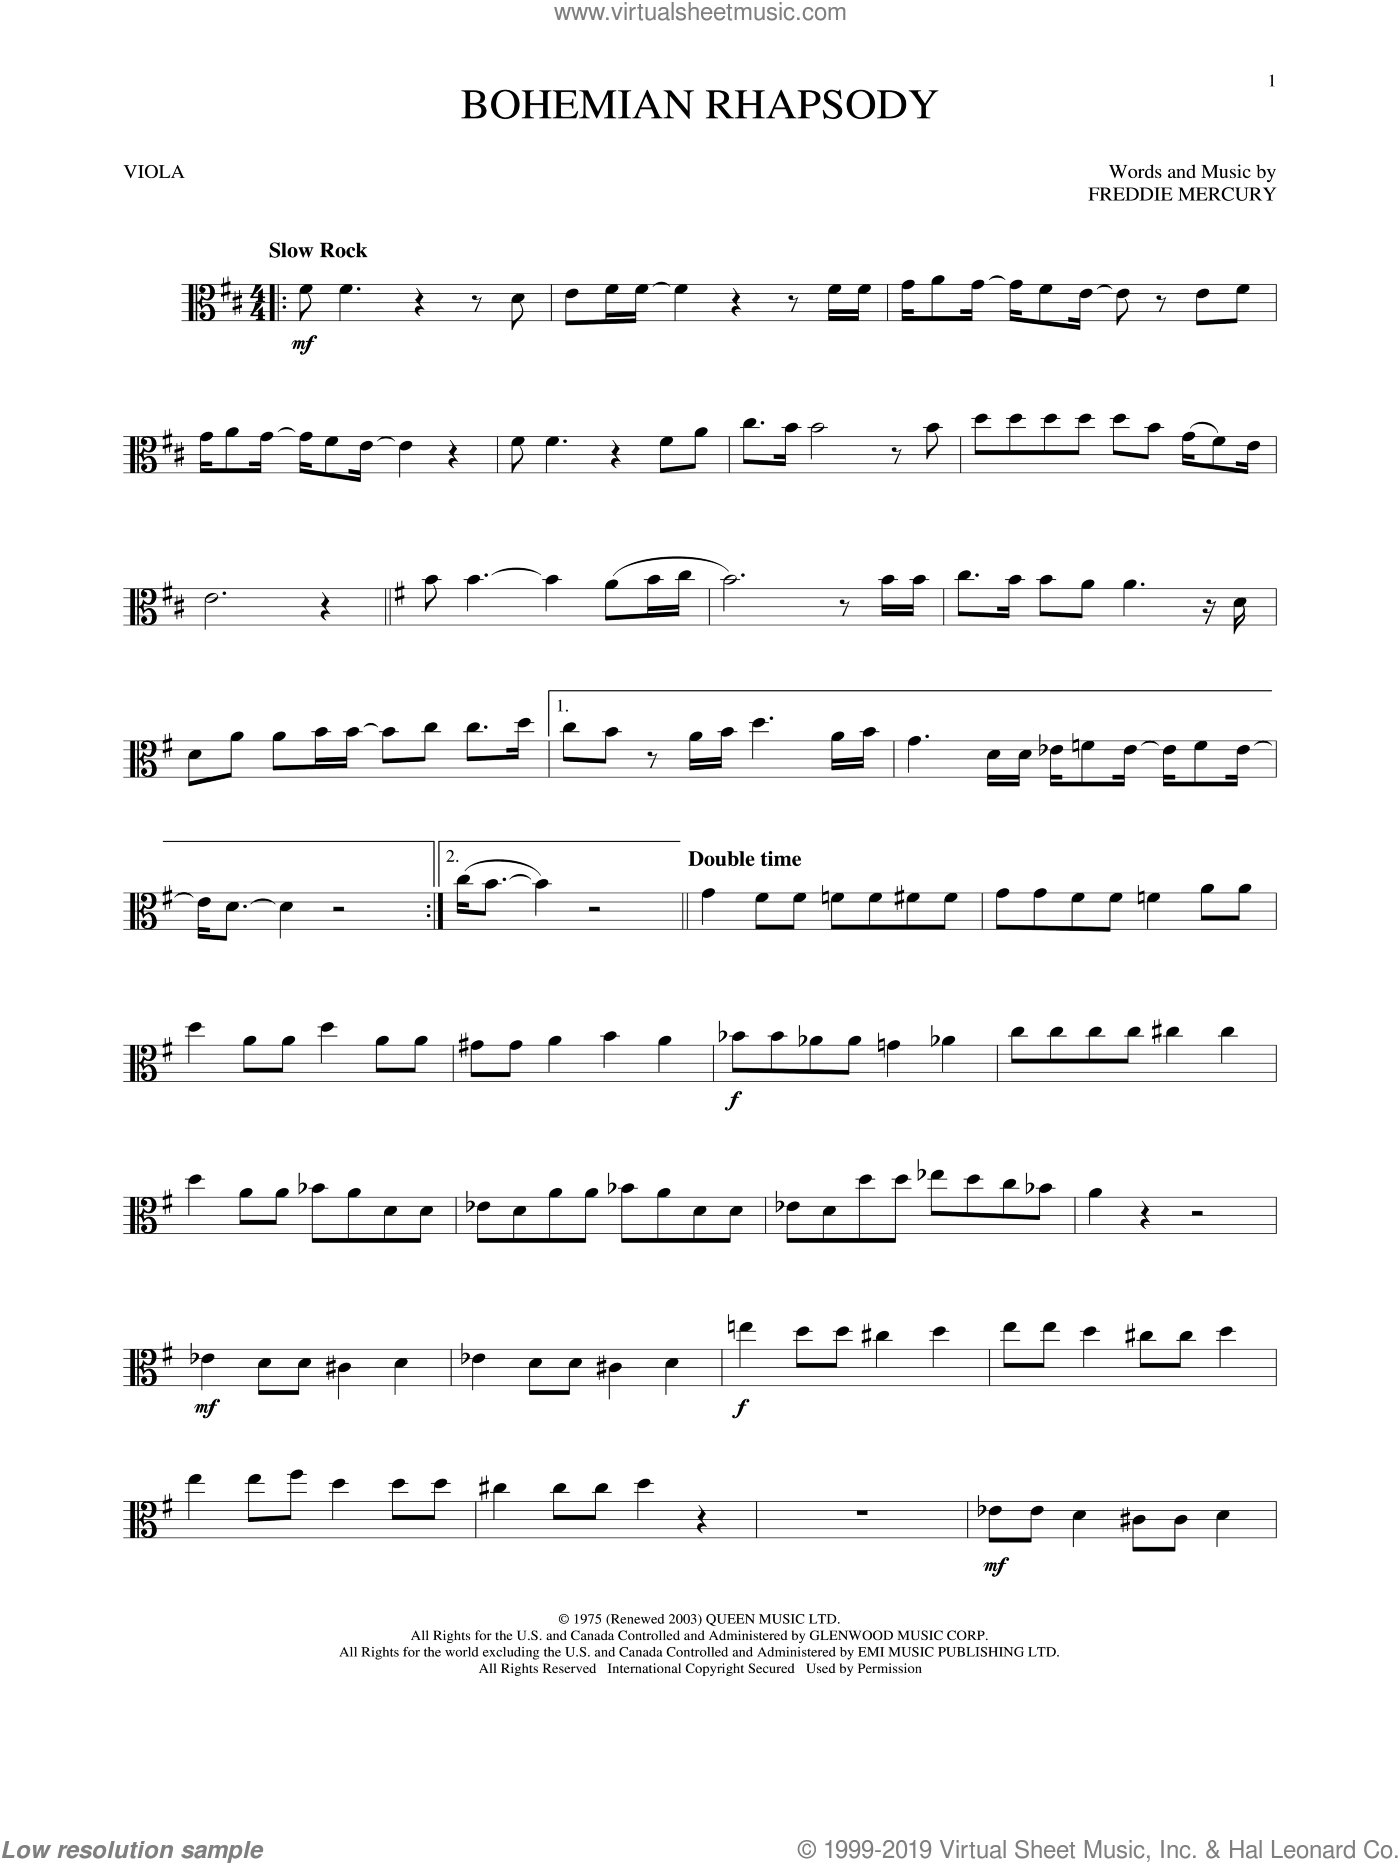 Bohemian Rhapsody sheet music for viola solo by Queen and Freddie Mercury, intermediate skill level